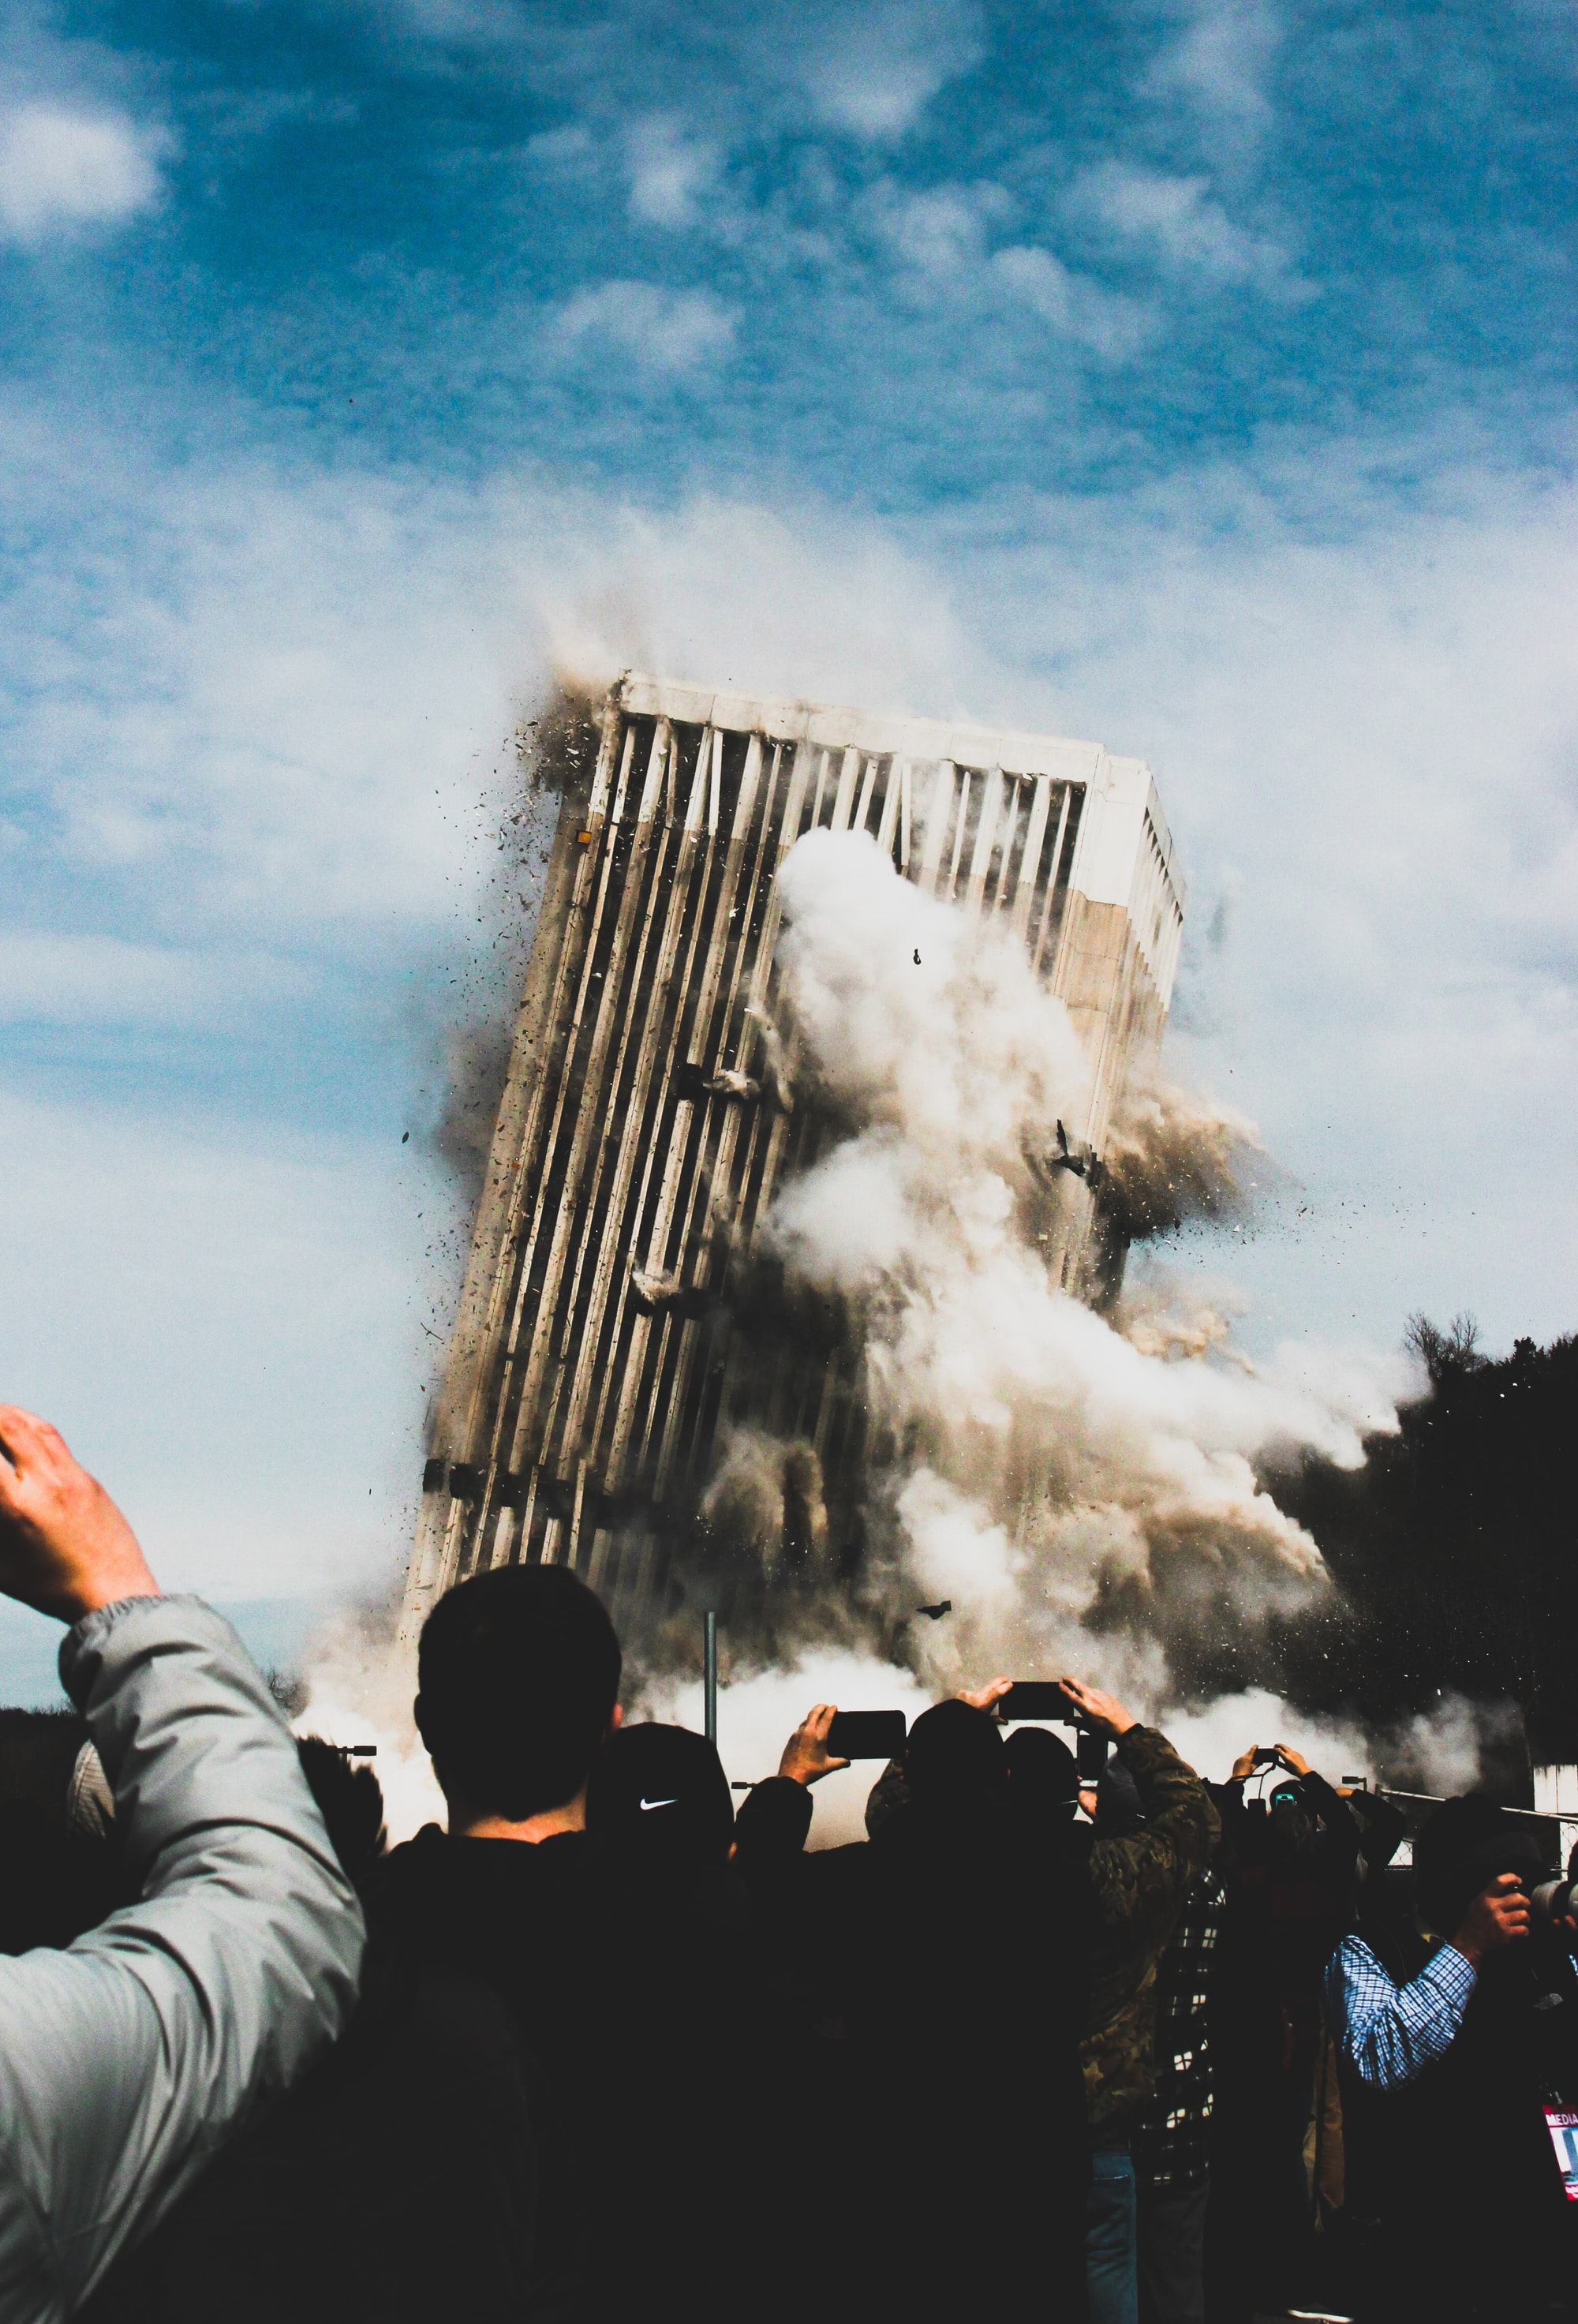 A group of people watch and record a building being imploded.